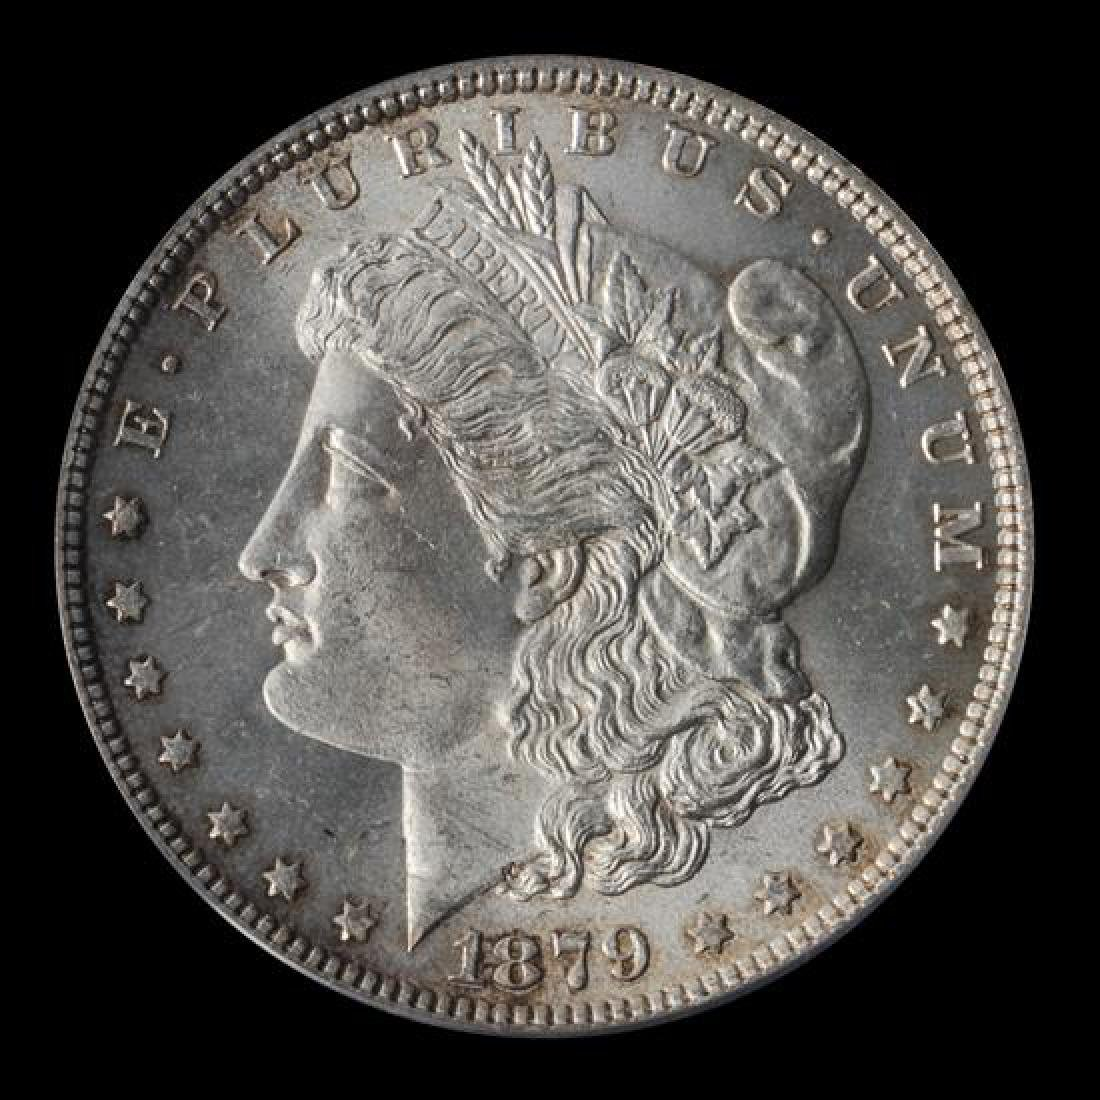 A United States 1879 Morgan Silver Dollar Coin